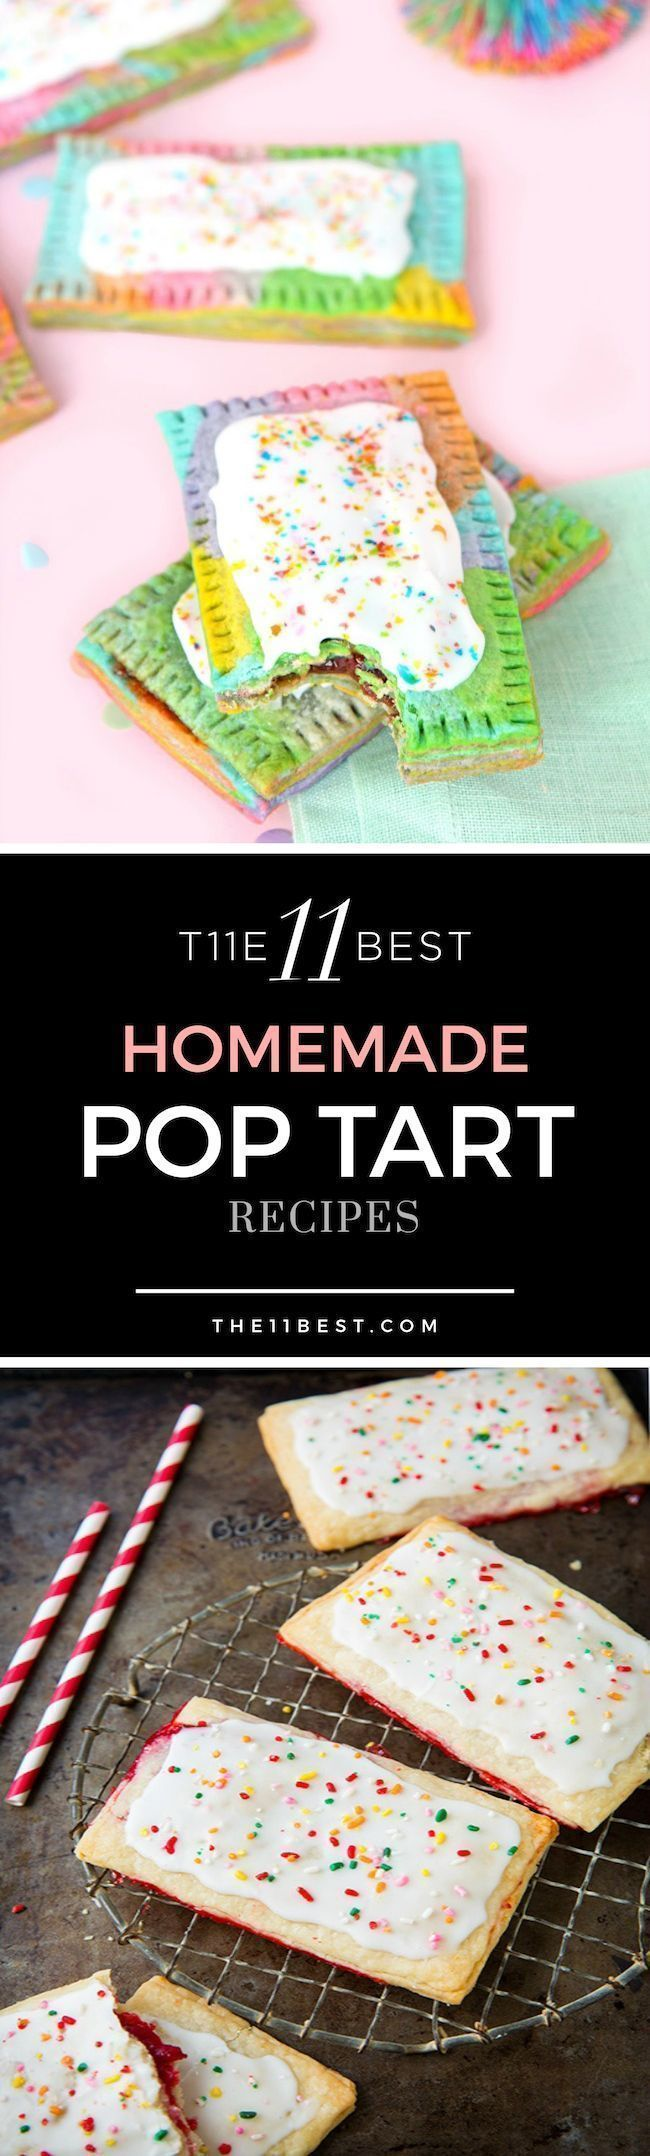 Homemade pop tart recipes. How to make pop tarts.